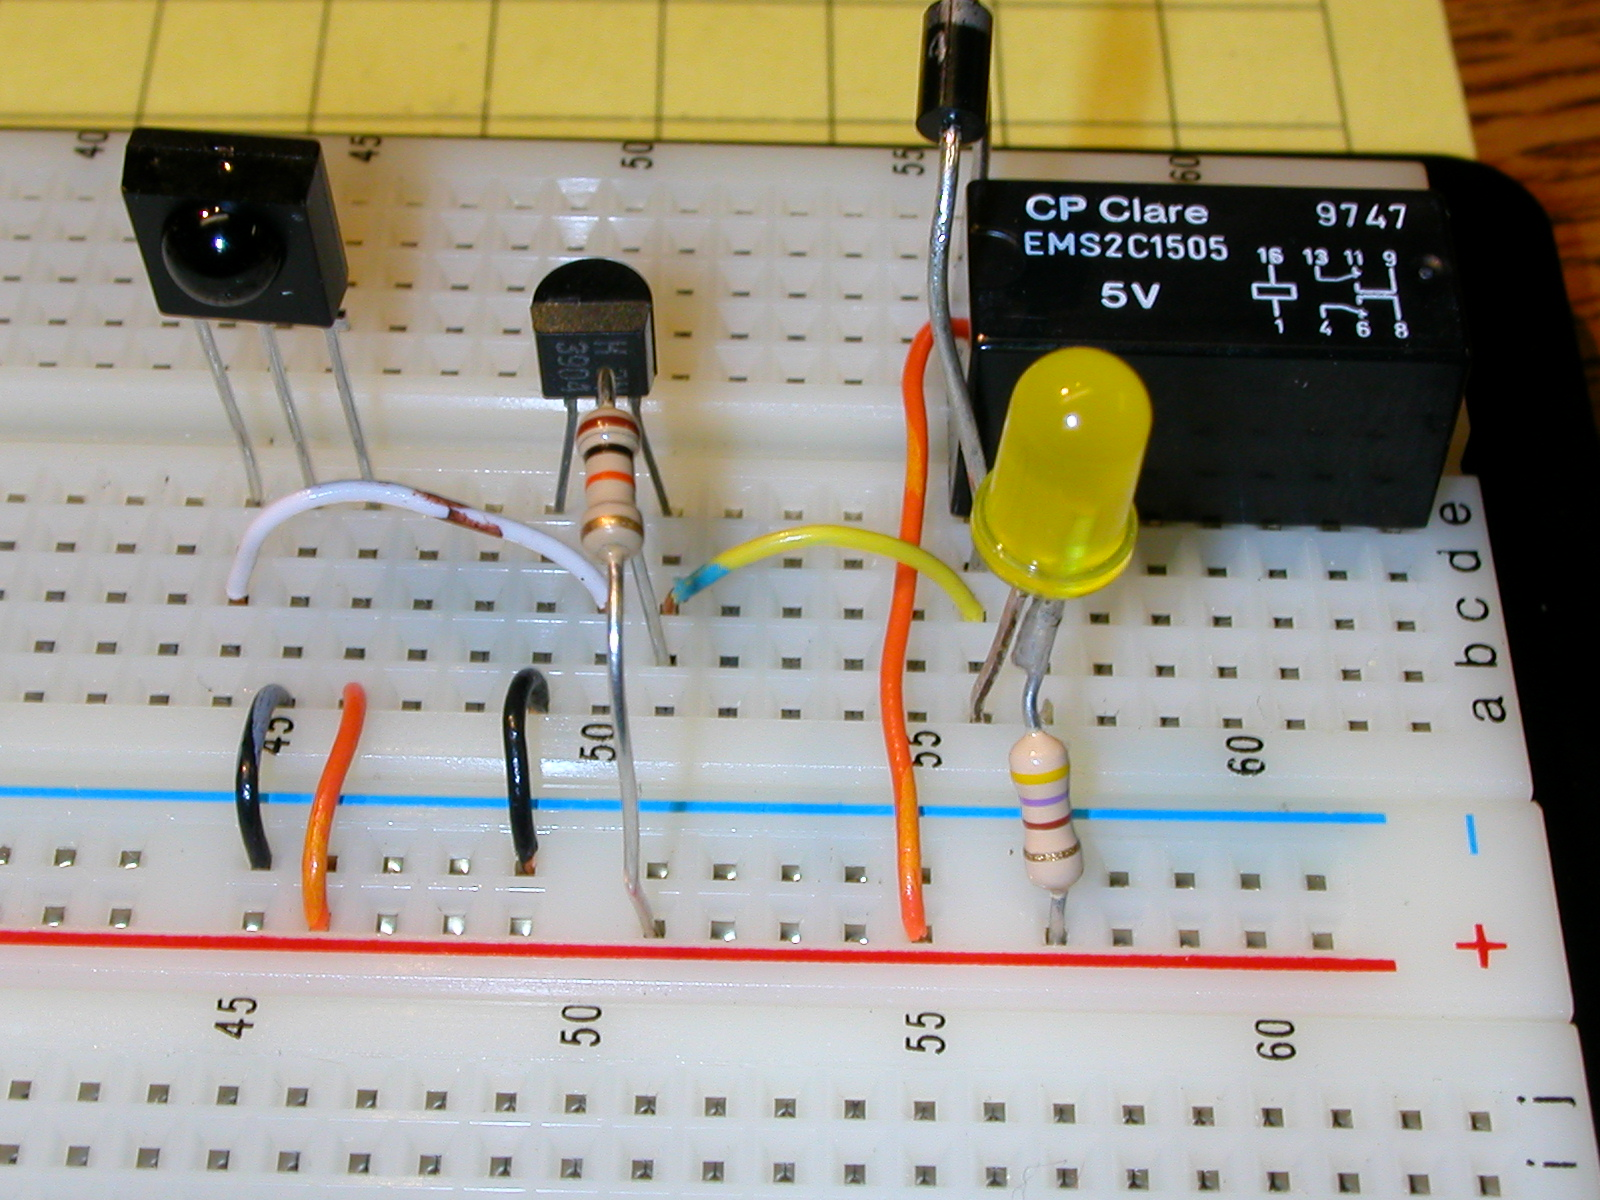 Pulsed Ir Sensor Led And Photo Diode Object Detection Circuit Diagram